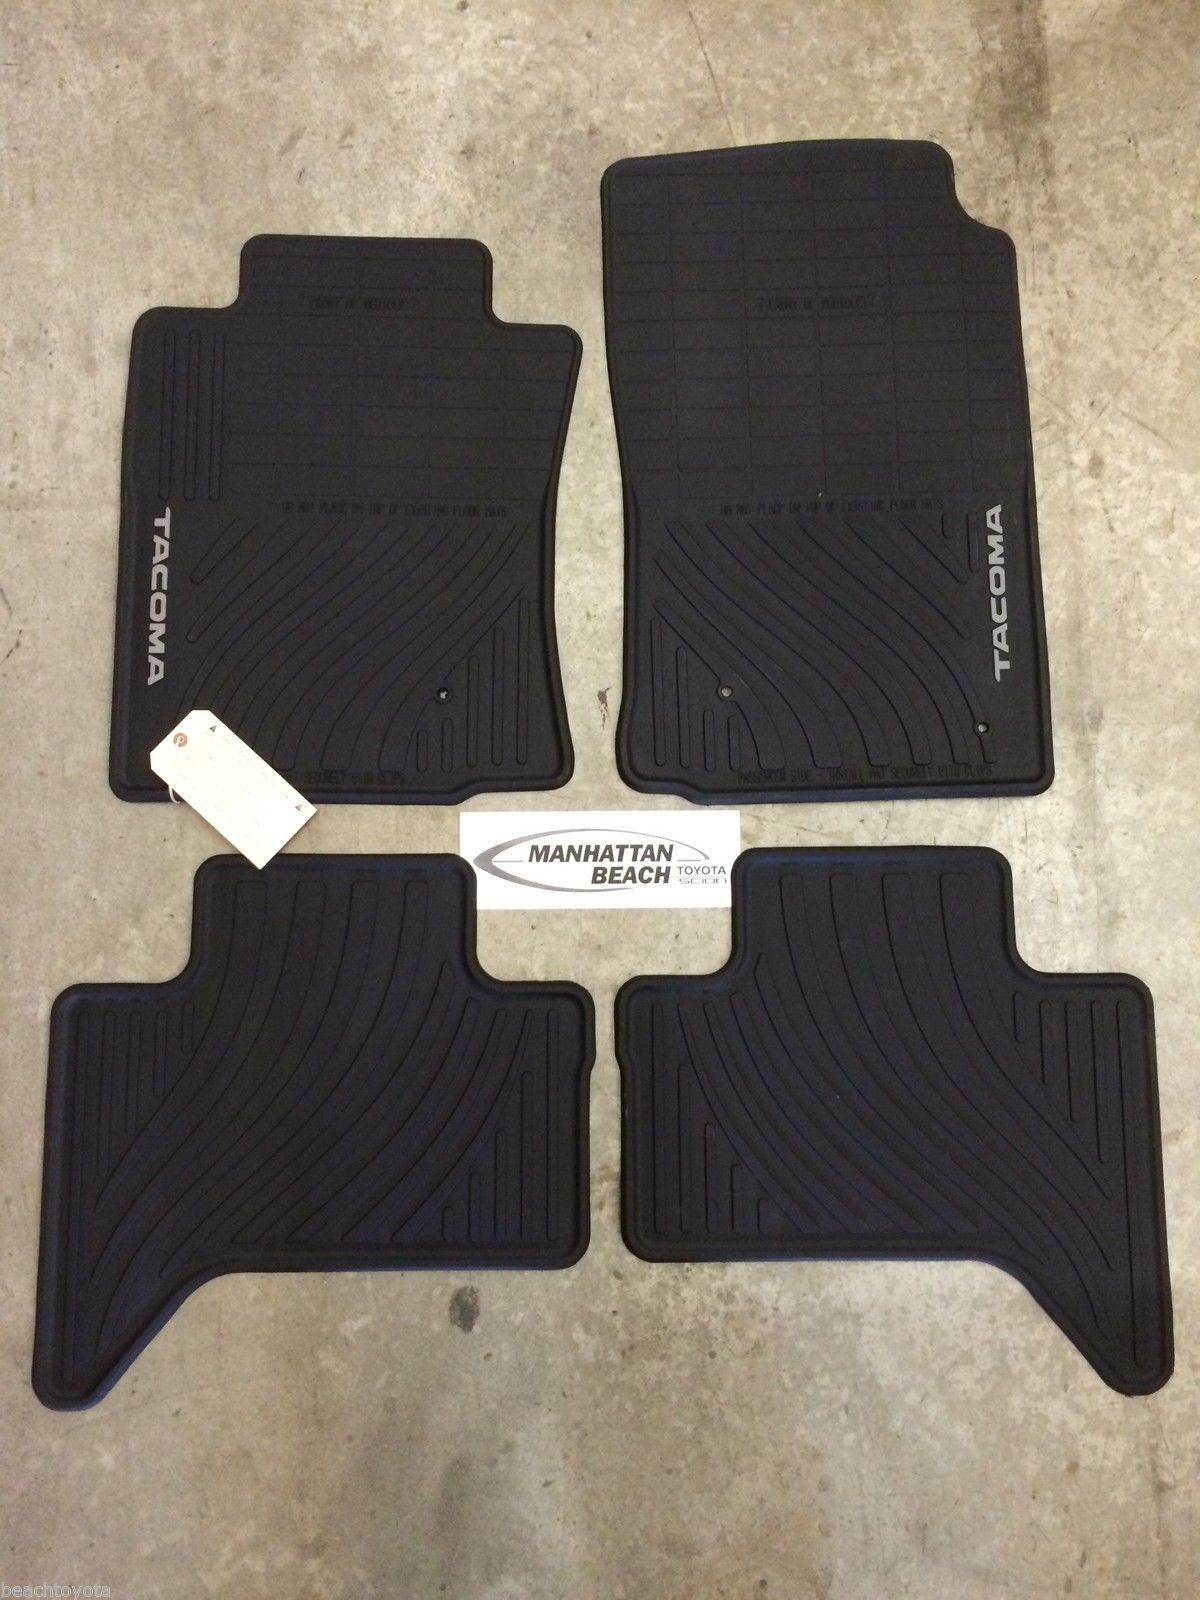 low az sentra floor mats nissan used show htm certified for sale